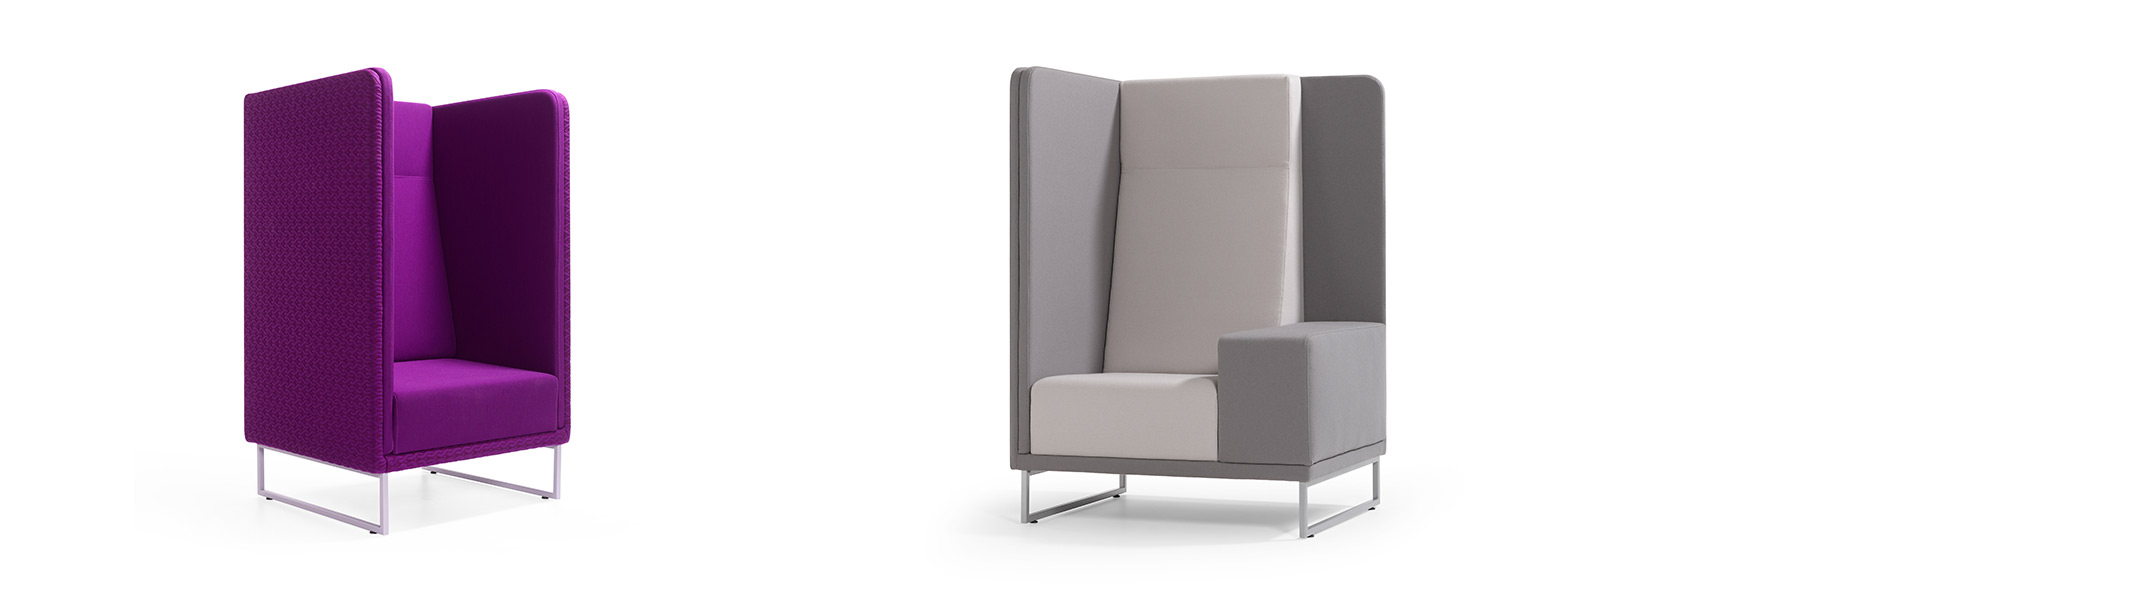 Puple and gray 1st Class single seater high back sofa